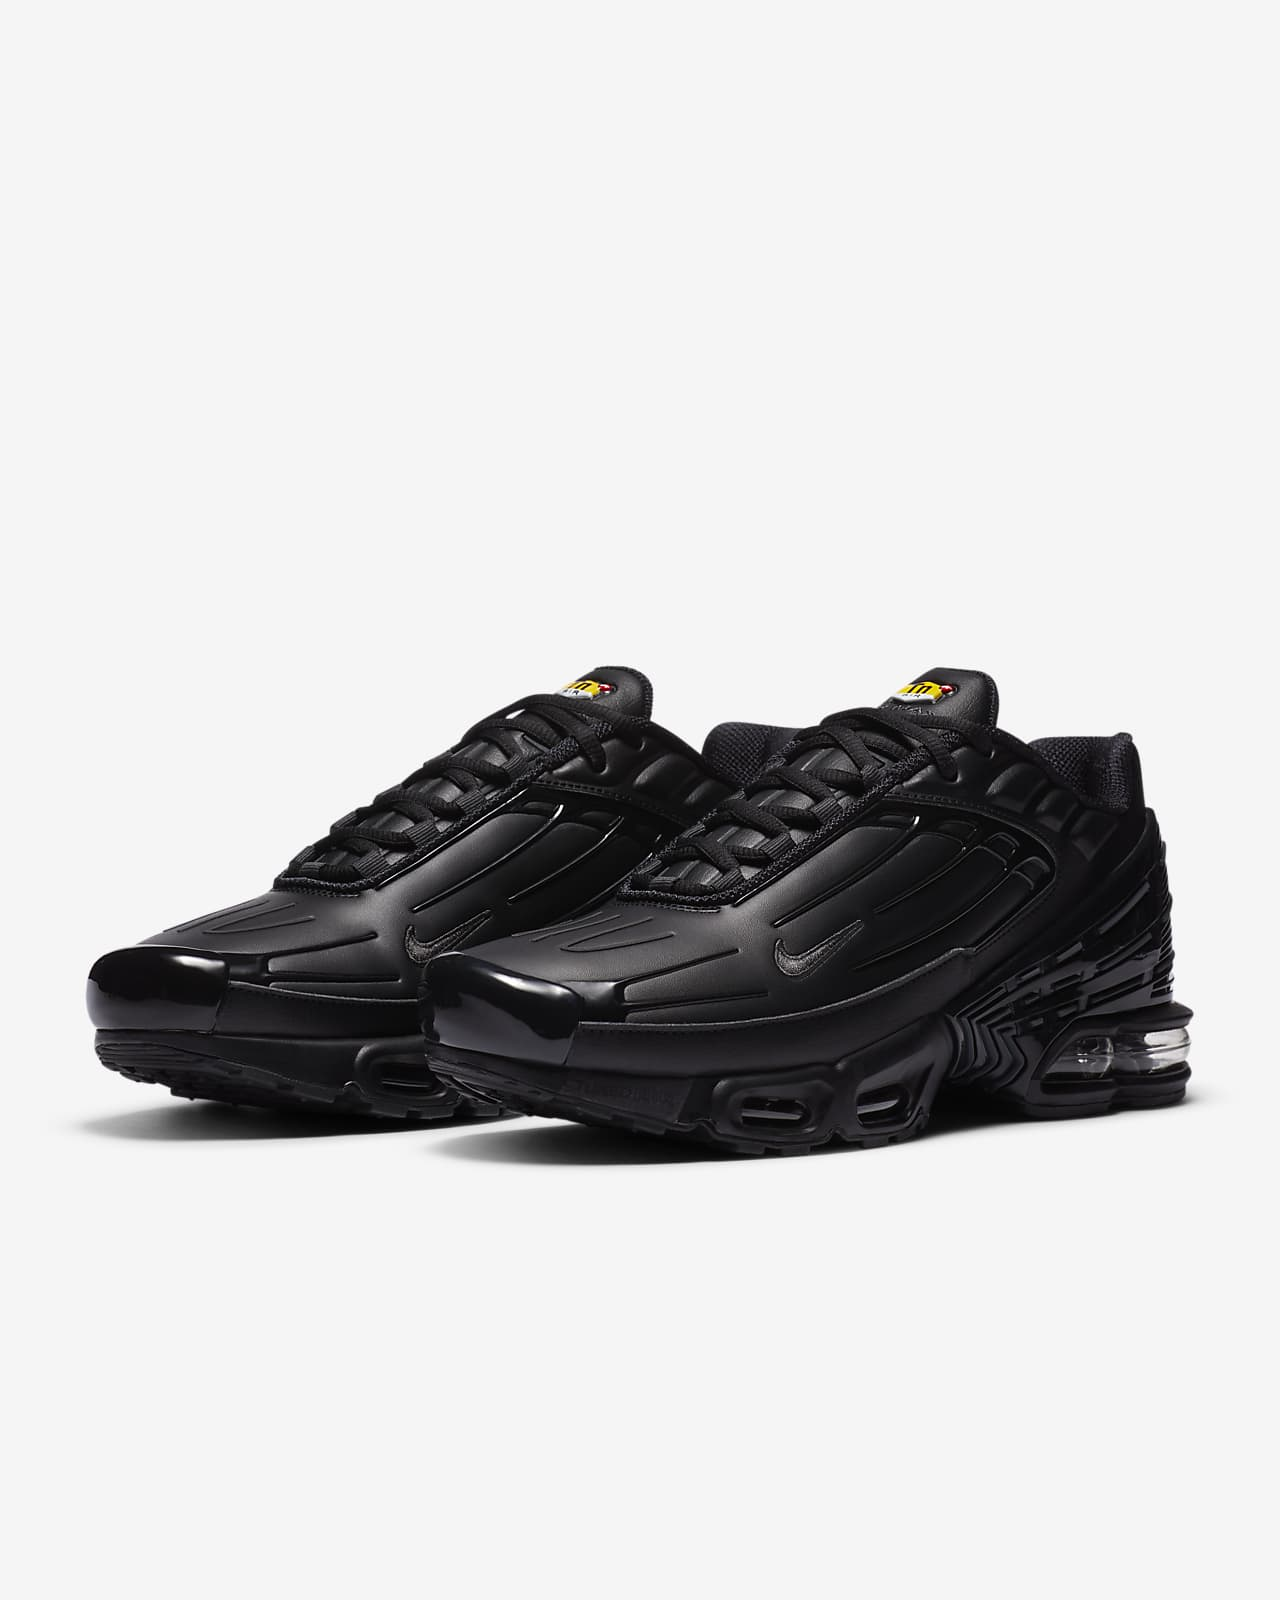 nine air max homme